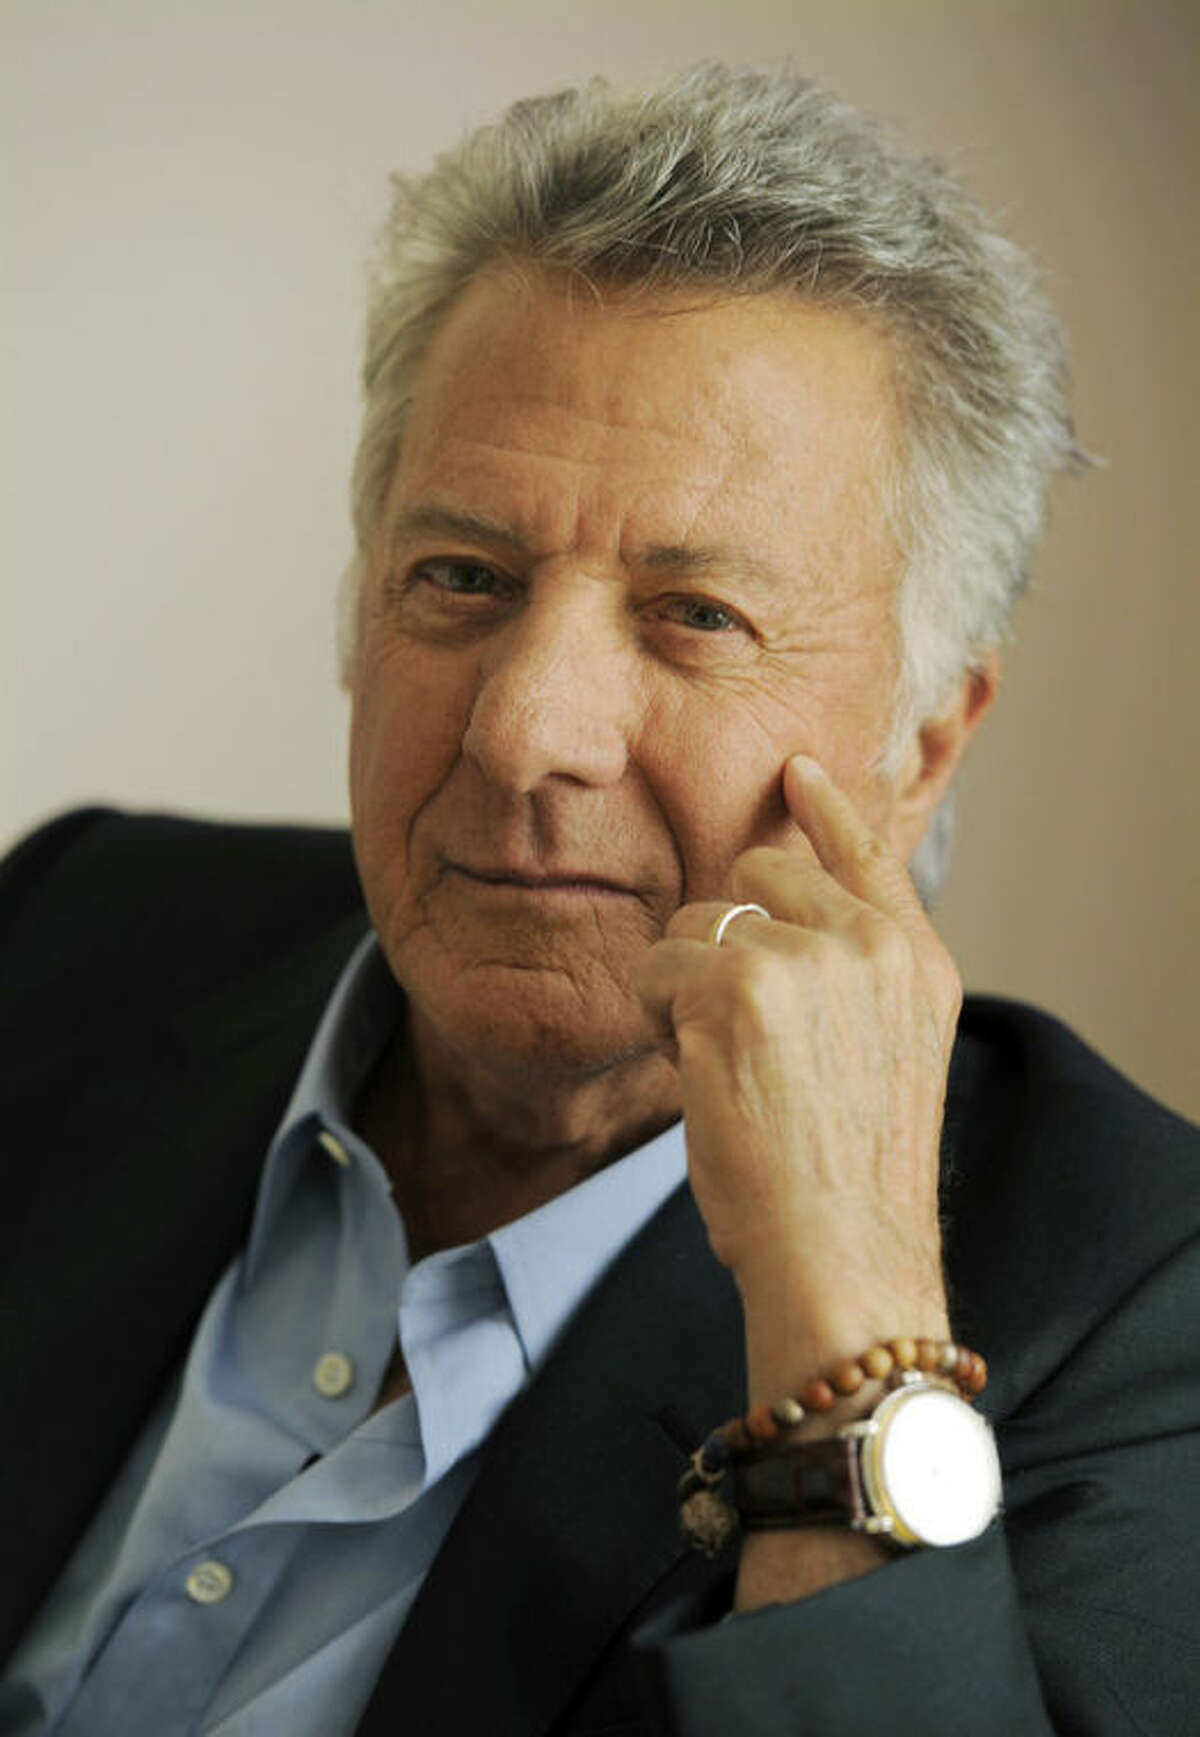 """FILE - In this Sept. 10, 2012 file photo, Dustin Hoffman, director of the film """"Quartet,"""" poses for a portrait at the 2012 Toronto Film Festival, in Toronto. ?""""Quartet,?"""" which premiered at last September's Toronto International Film Festival, opened in a handful of theaters Jan. 11, 2013, and expands to wider release Friday. (Photo by Chris Pizzello/Invision/AP, File)"""